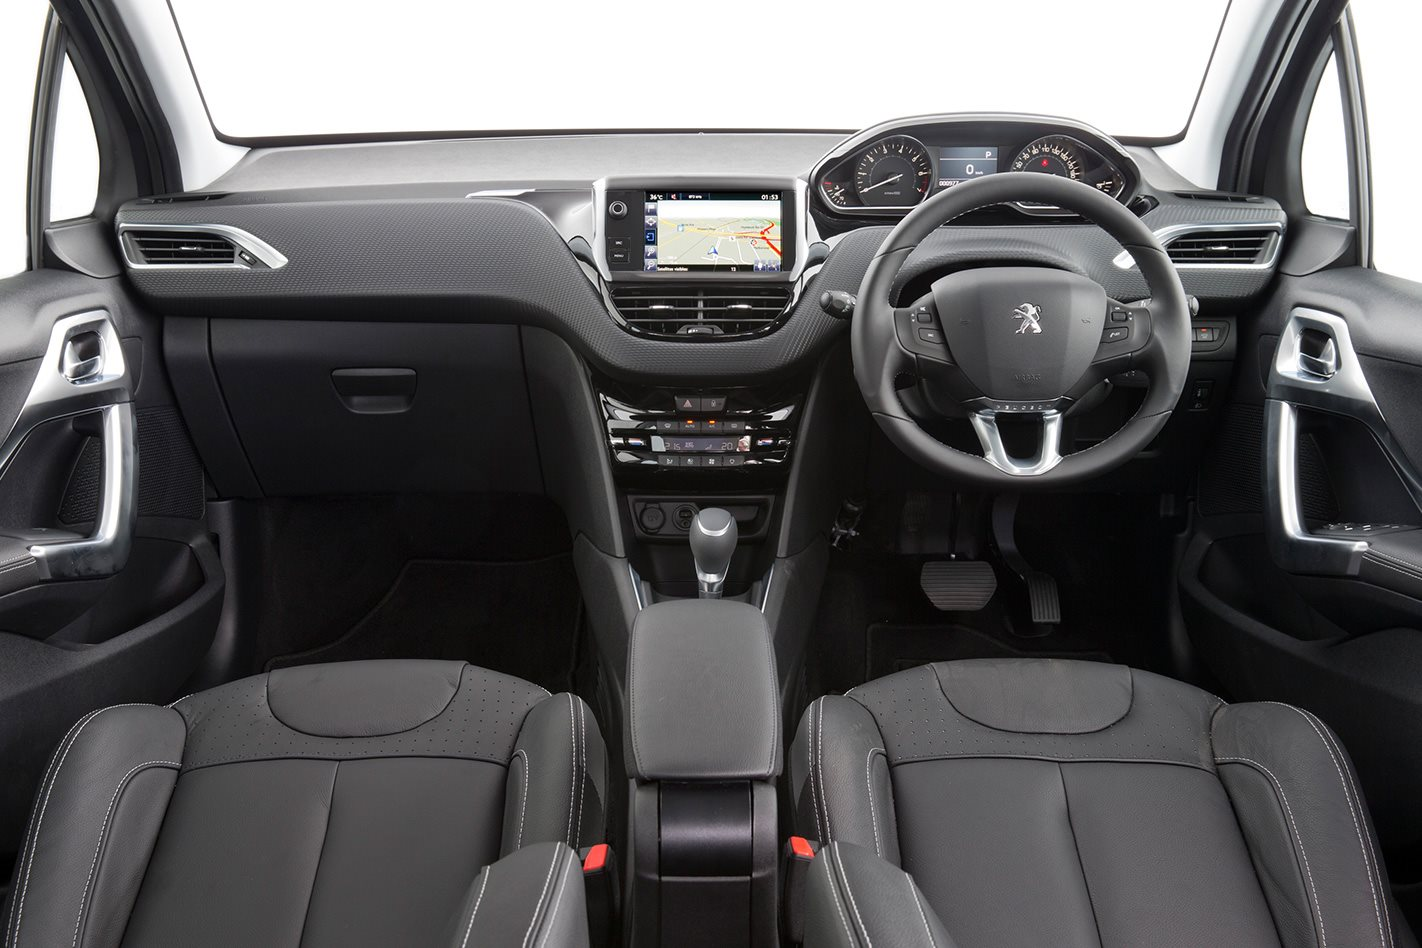 Peugeot 208 2018 Review, Price, Features | WhichCar